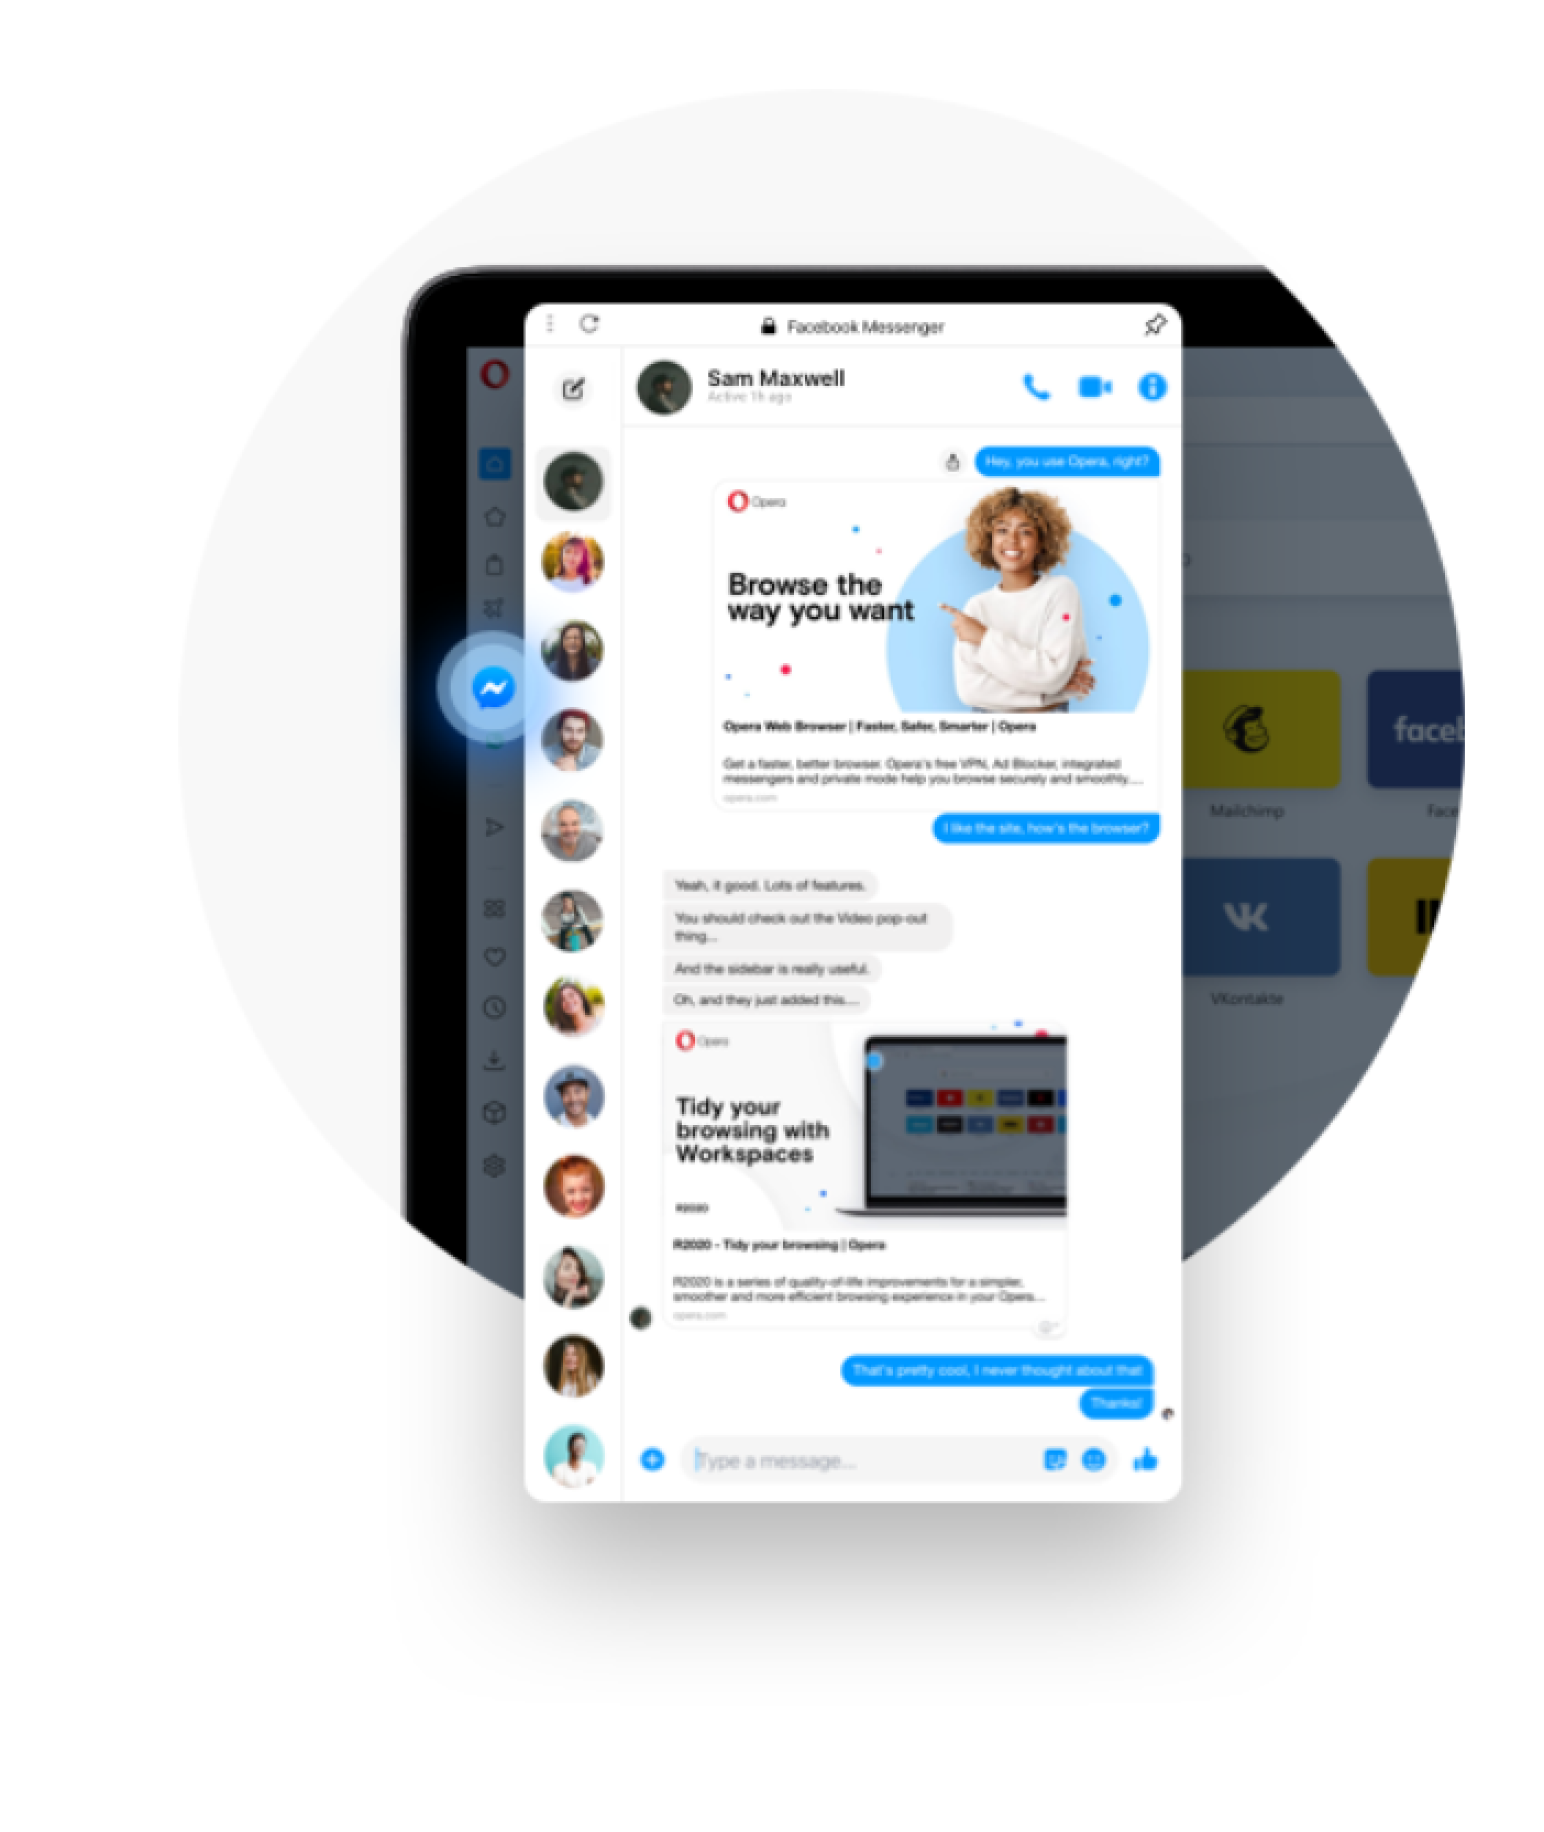 Thumbnail for Facebook Messenger screenshot